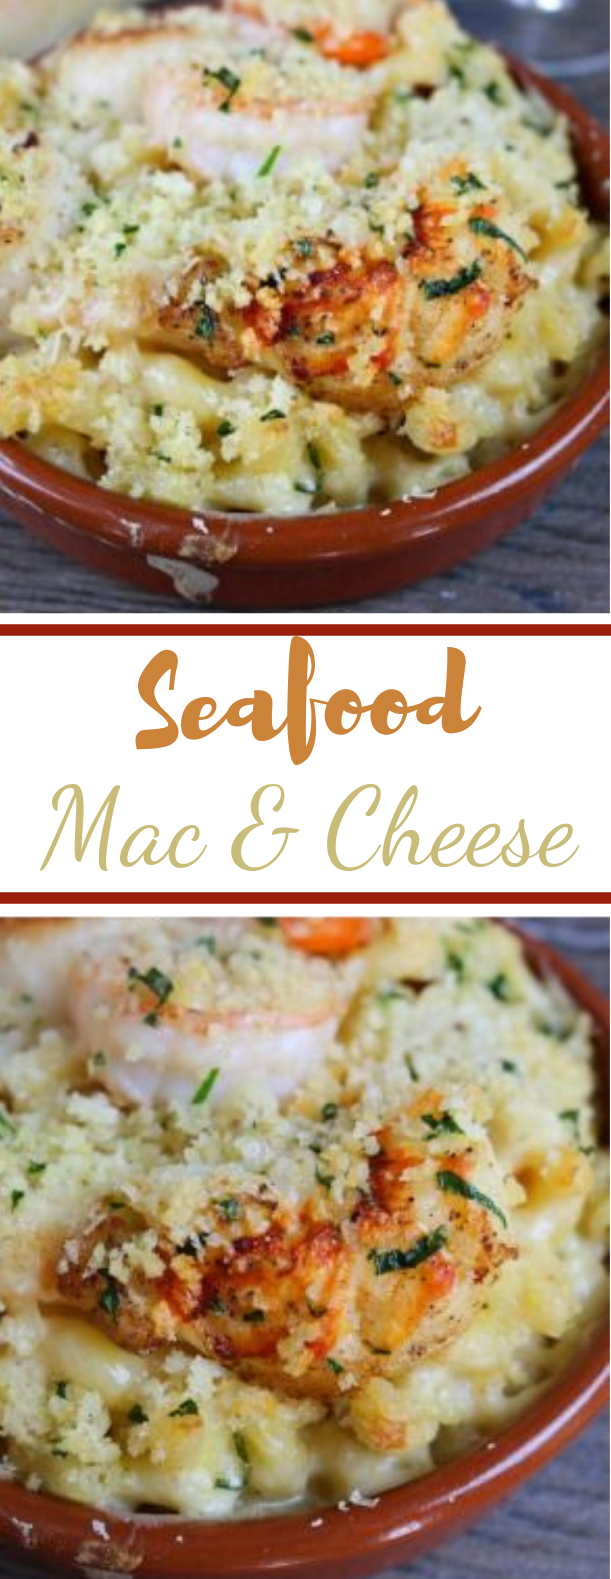 Seafood Mac & Cheese #delicious #dinner